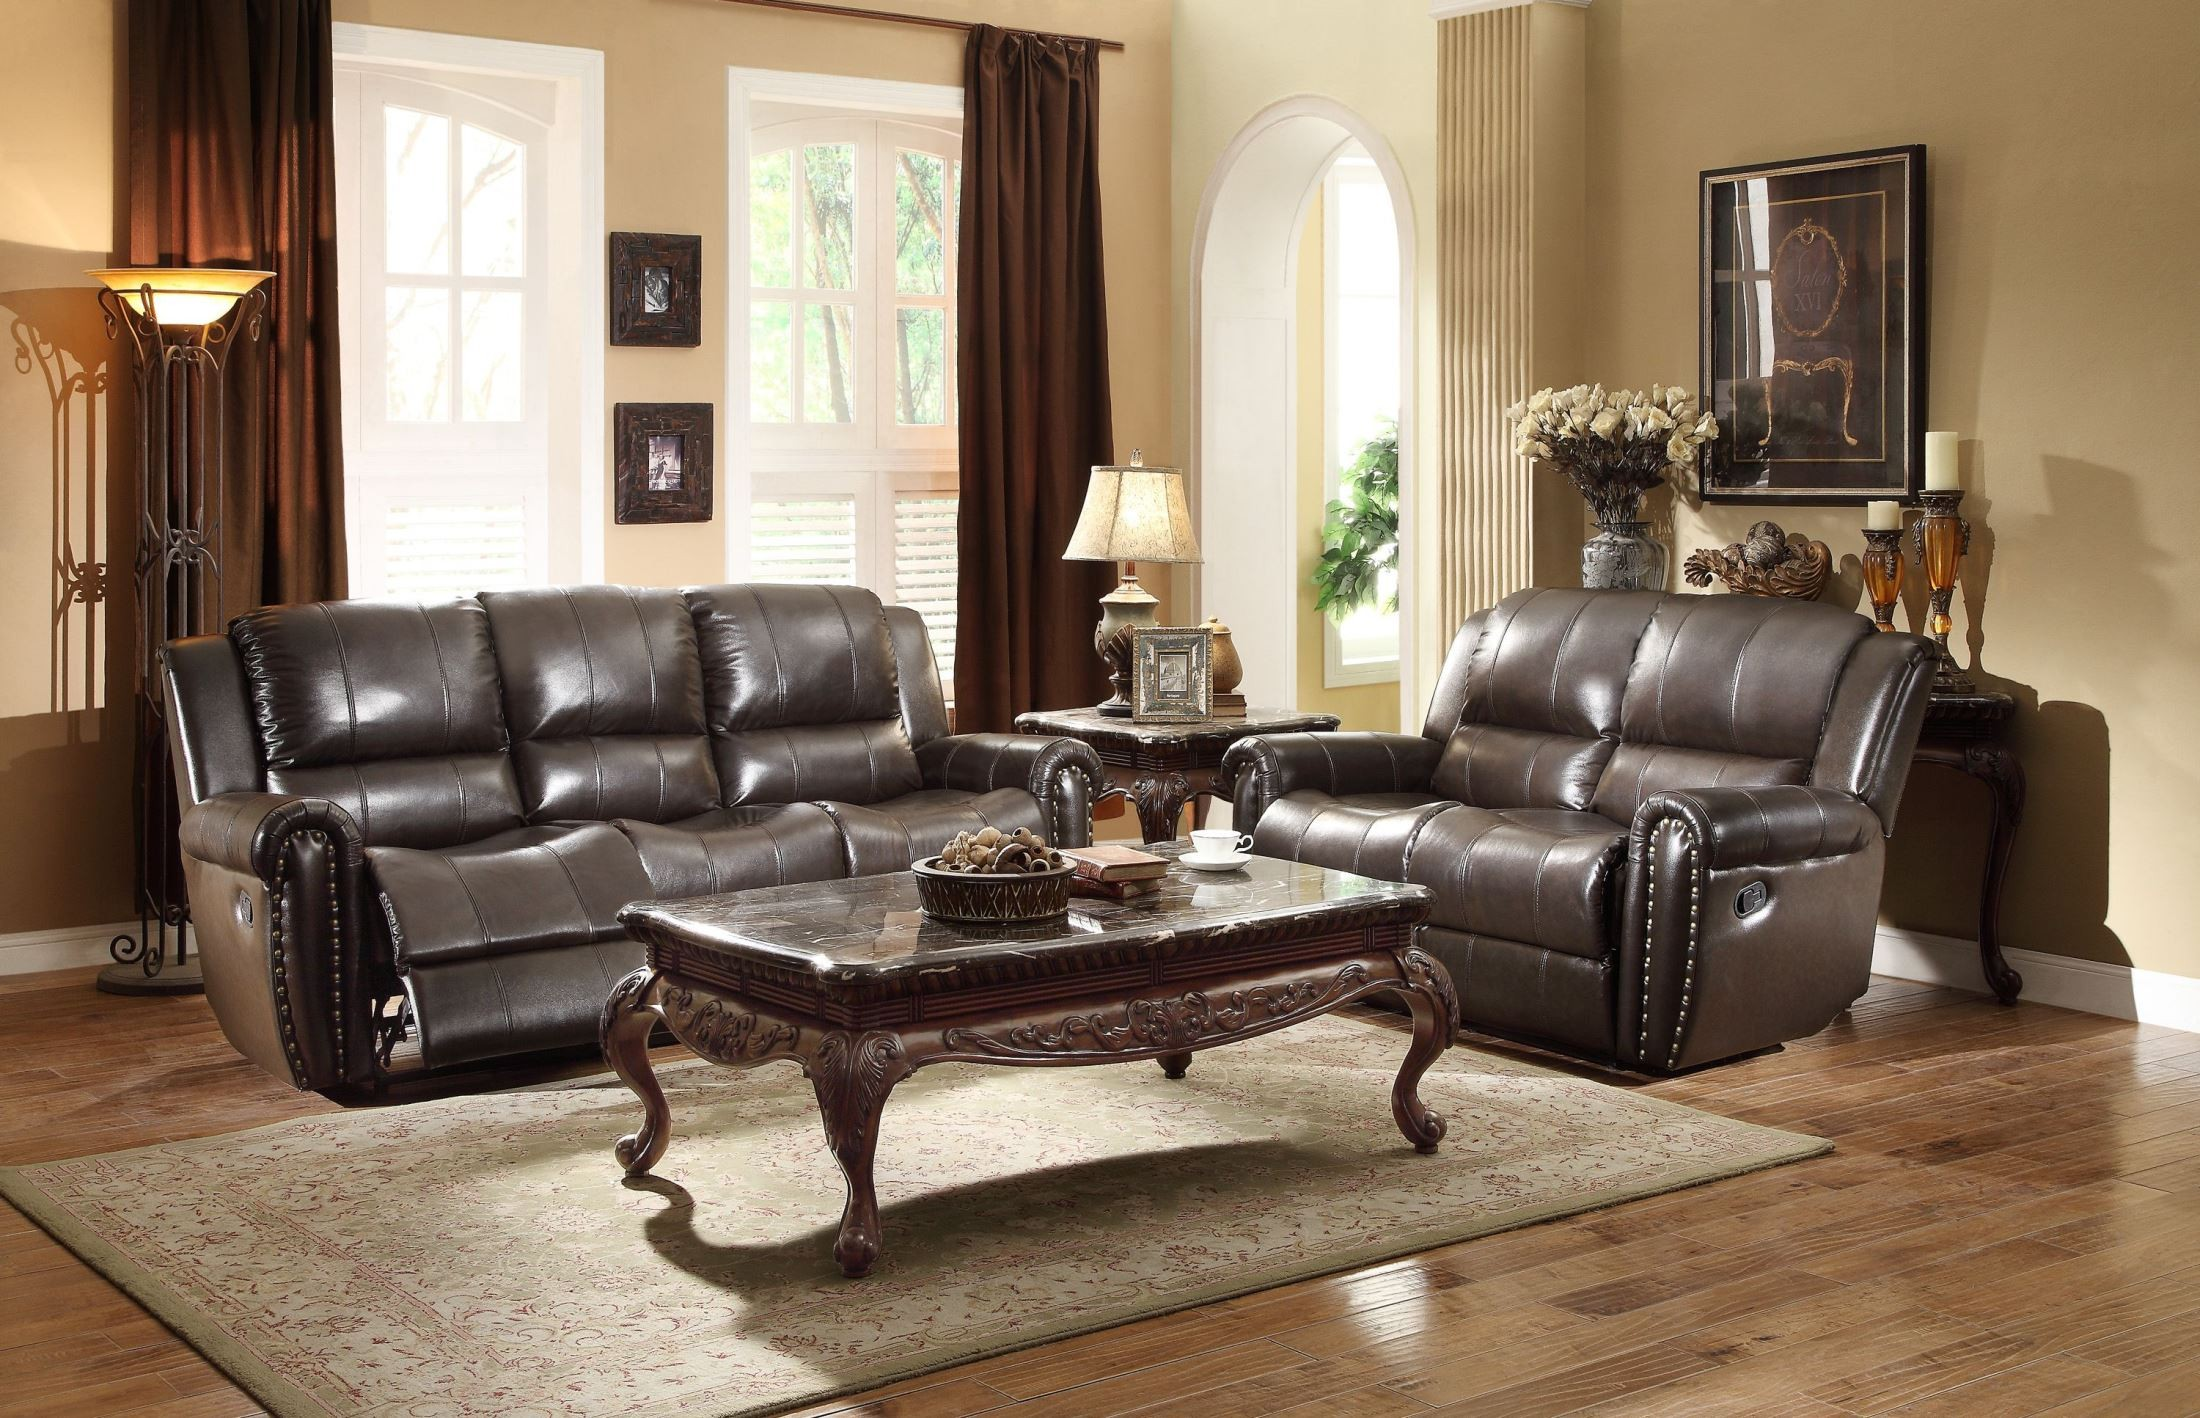 Bosworth dark brown double reclining living room set from for Dark brown living room set